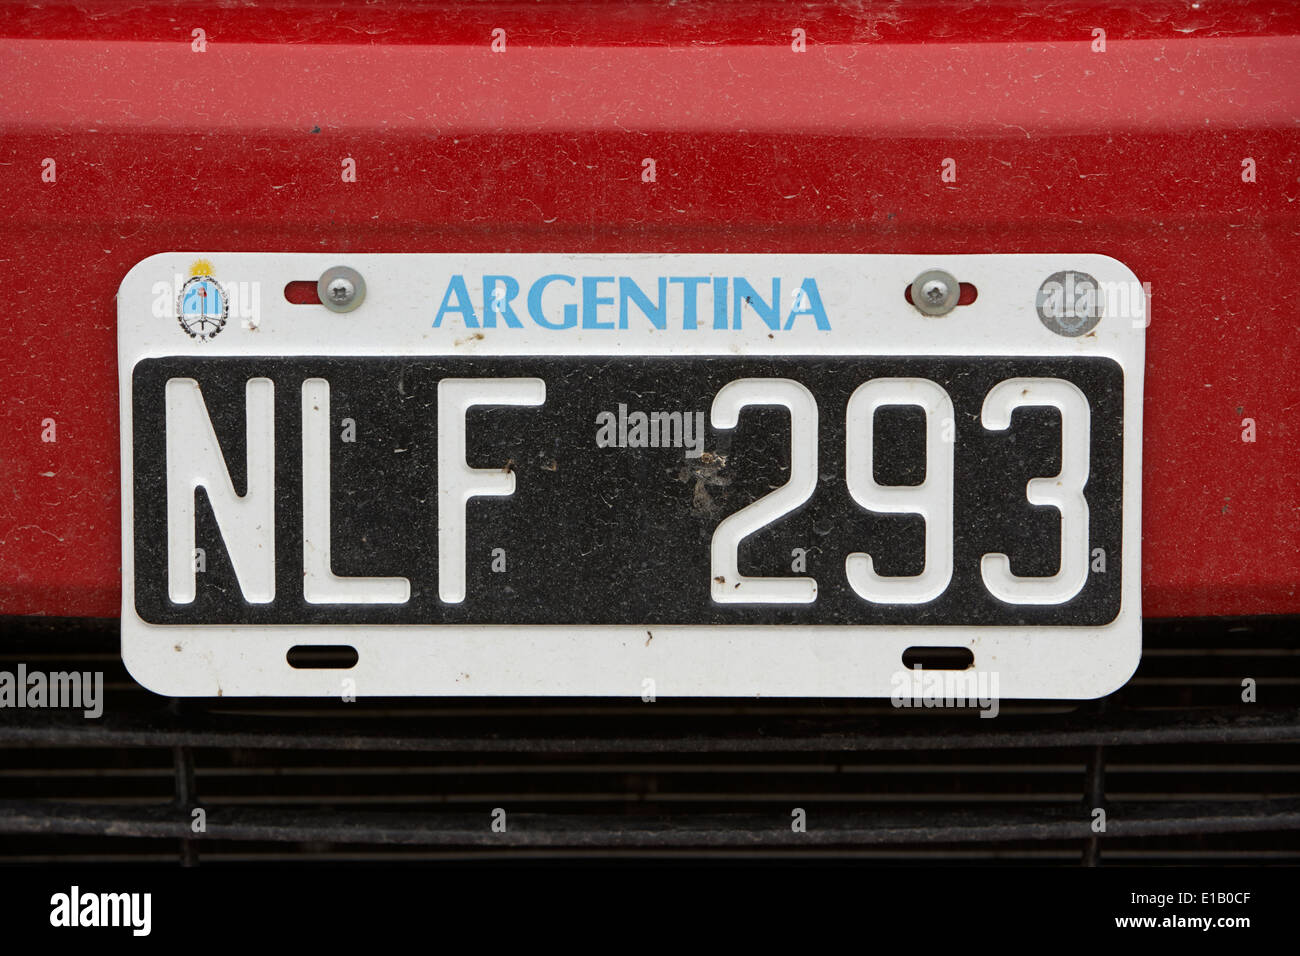 argentina license number plate tag Ushuaia Argentina - Stock Image